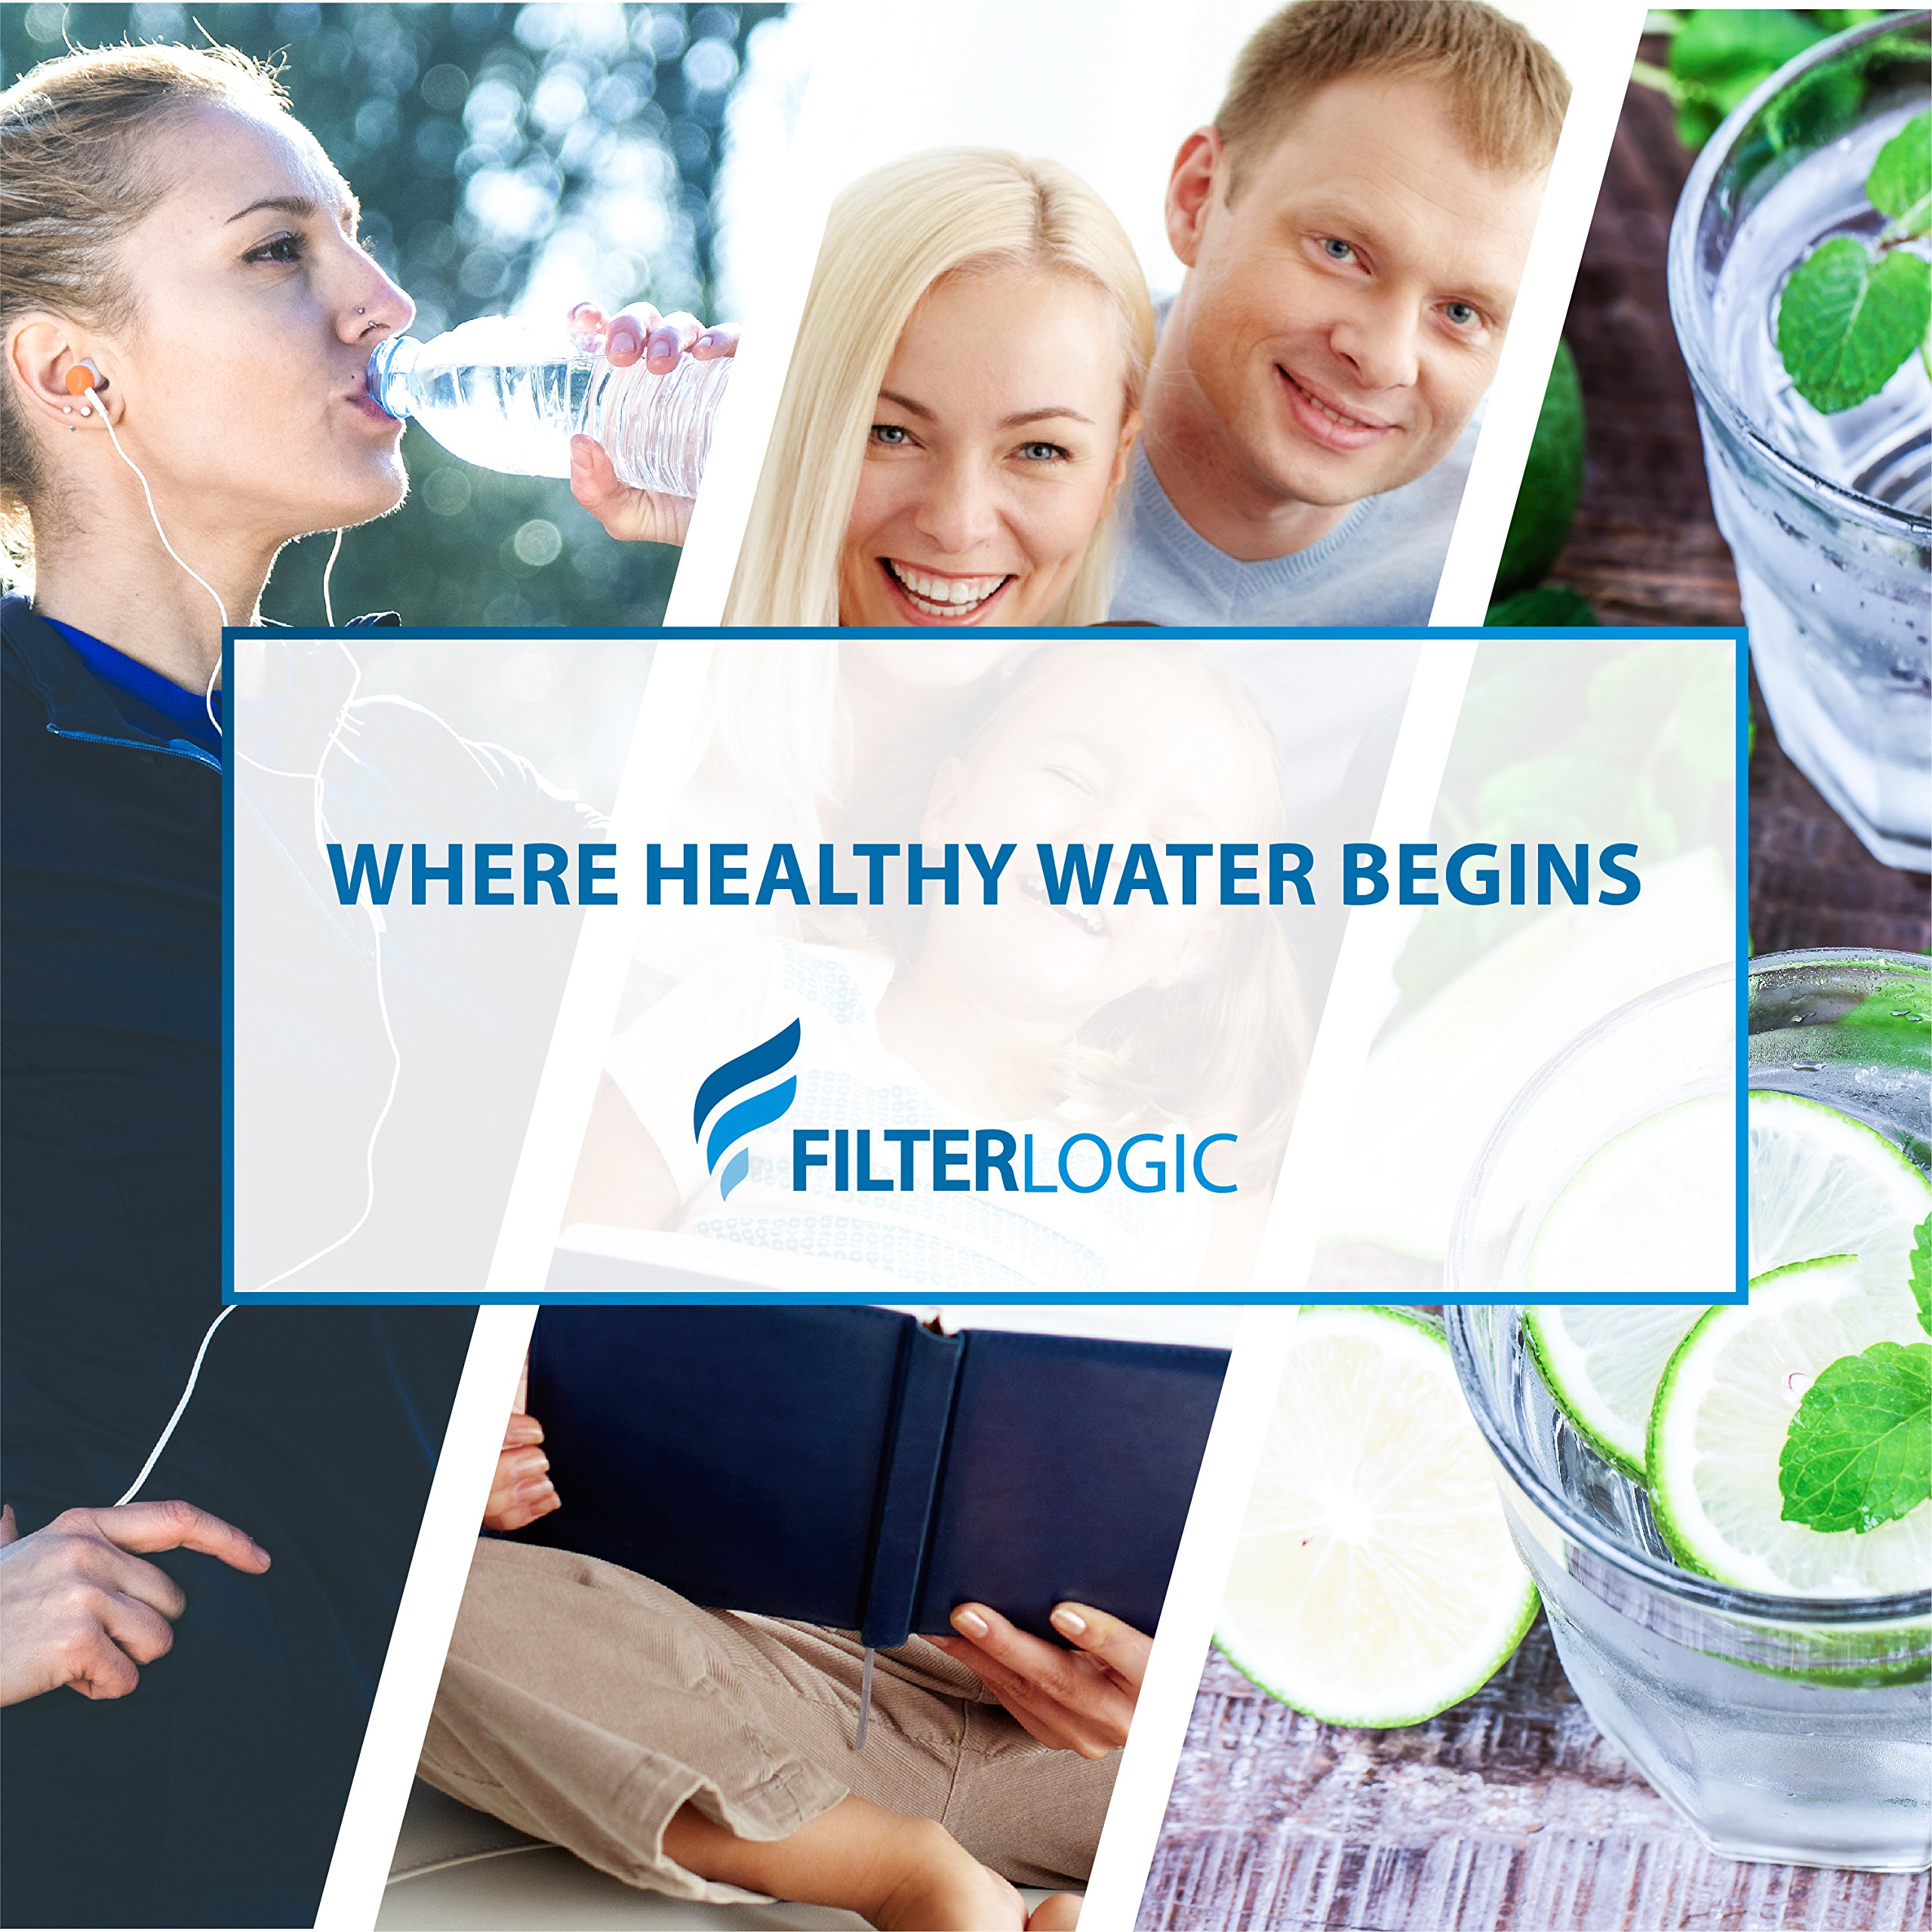 FilterLogic MWF Replacement Refrigerator Water Filter, Compatible with GE MWF, SmartWater, MWFP, MWFA, GWF, HDX FMG-1, WFC1201, GSE25GSHECSS, PC75009, RWF1060, 197D6321P006, 3 Pack by FilterLogic (Image #9)